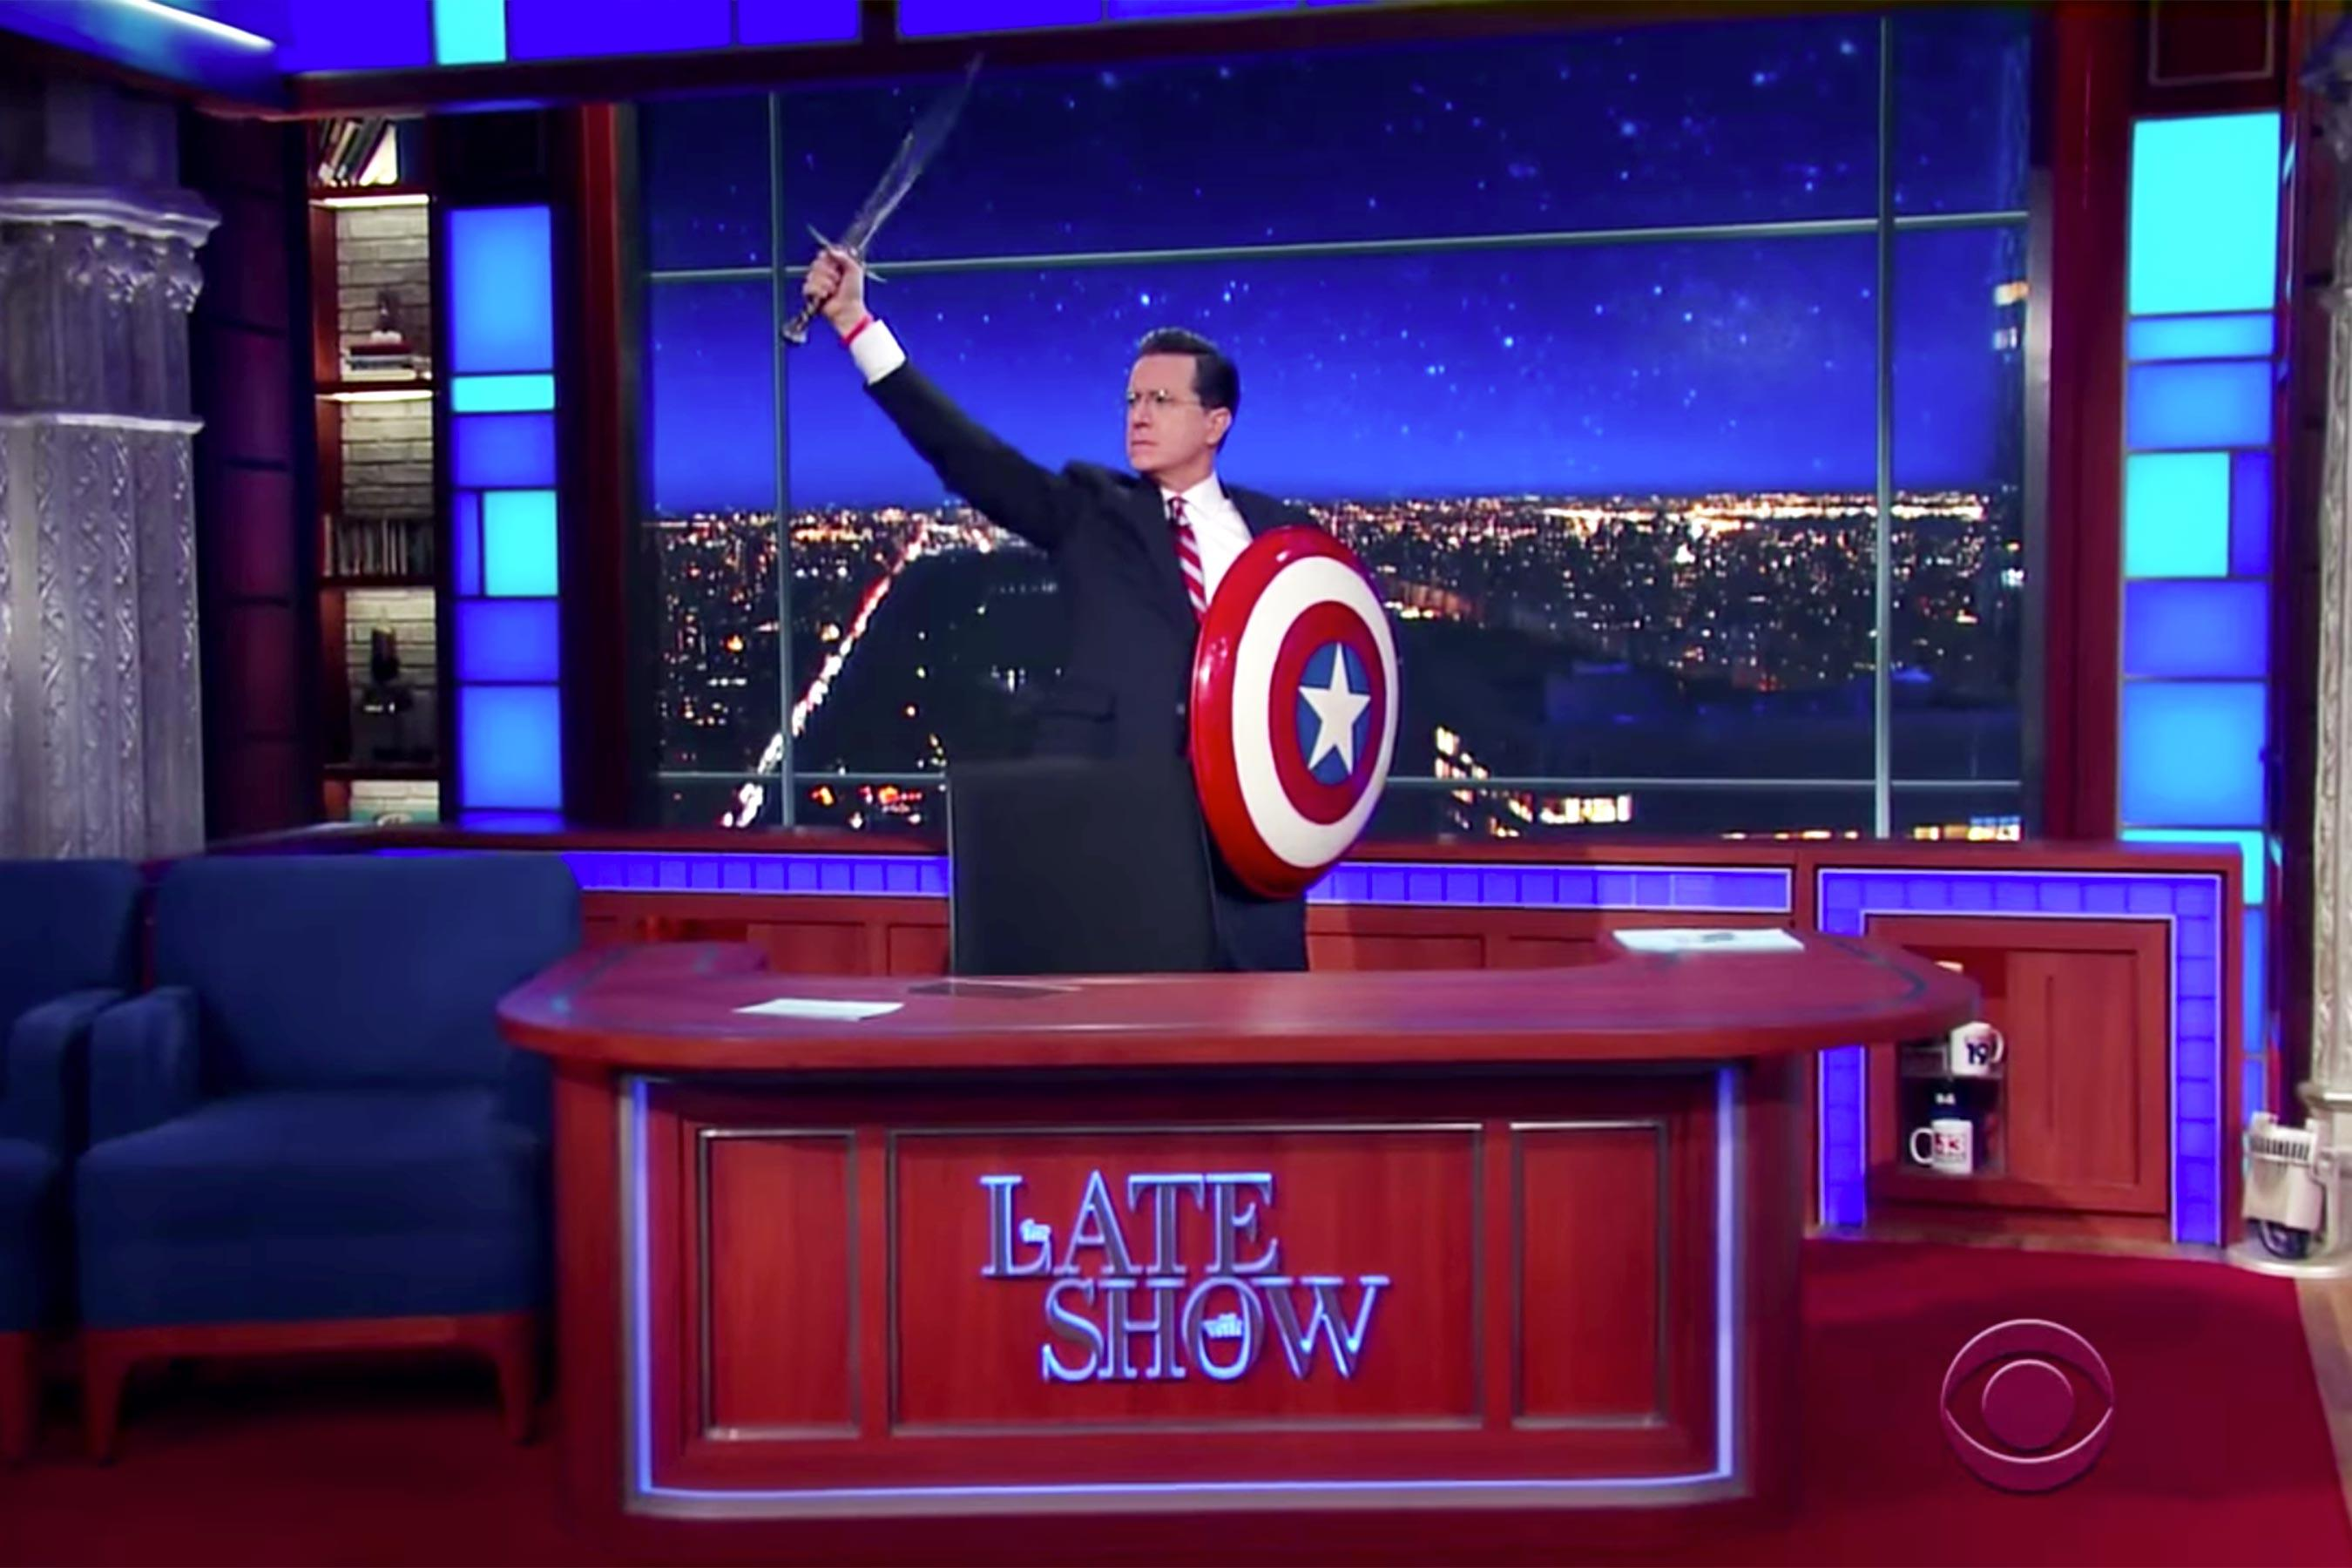 Stephen Colbert revives his alter ego to discuss Trump's budget plan